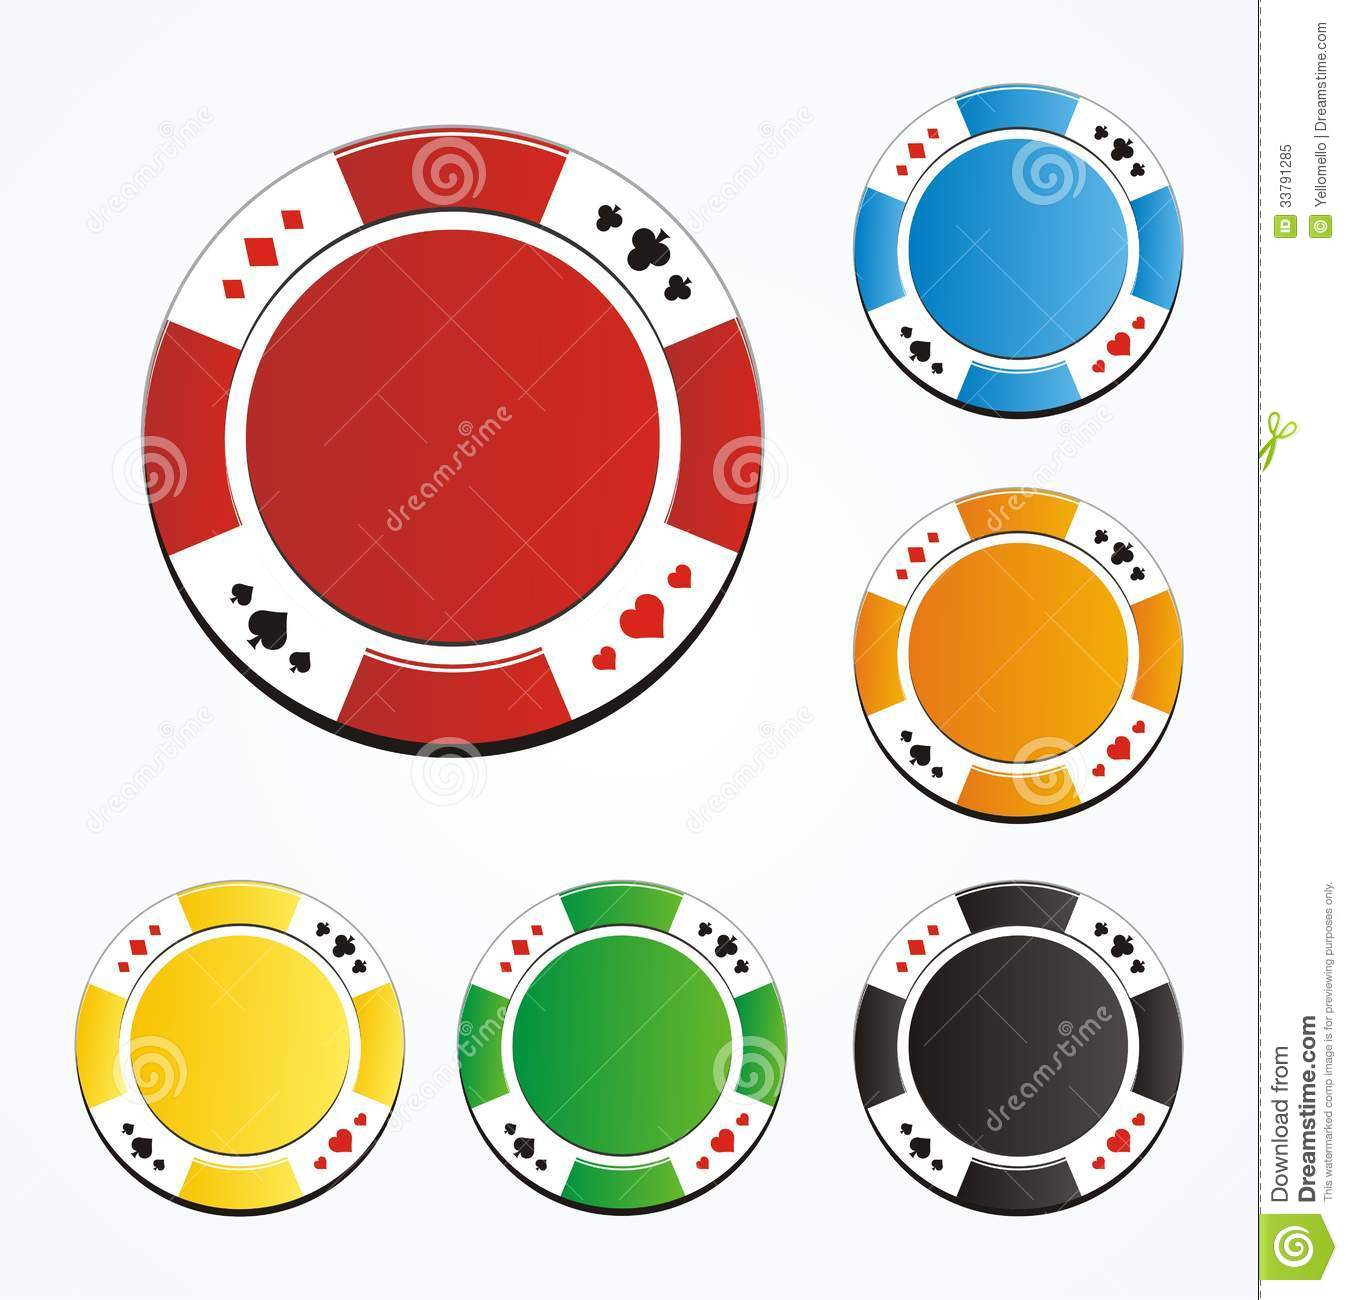 Blank Poker Chips Vector Royalty Free Stock Photo - Image: 33791285